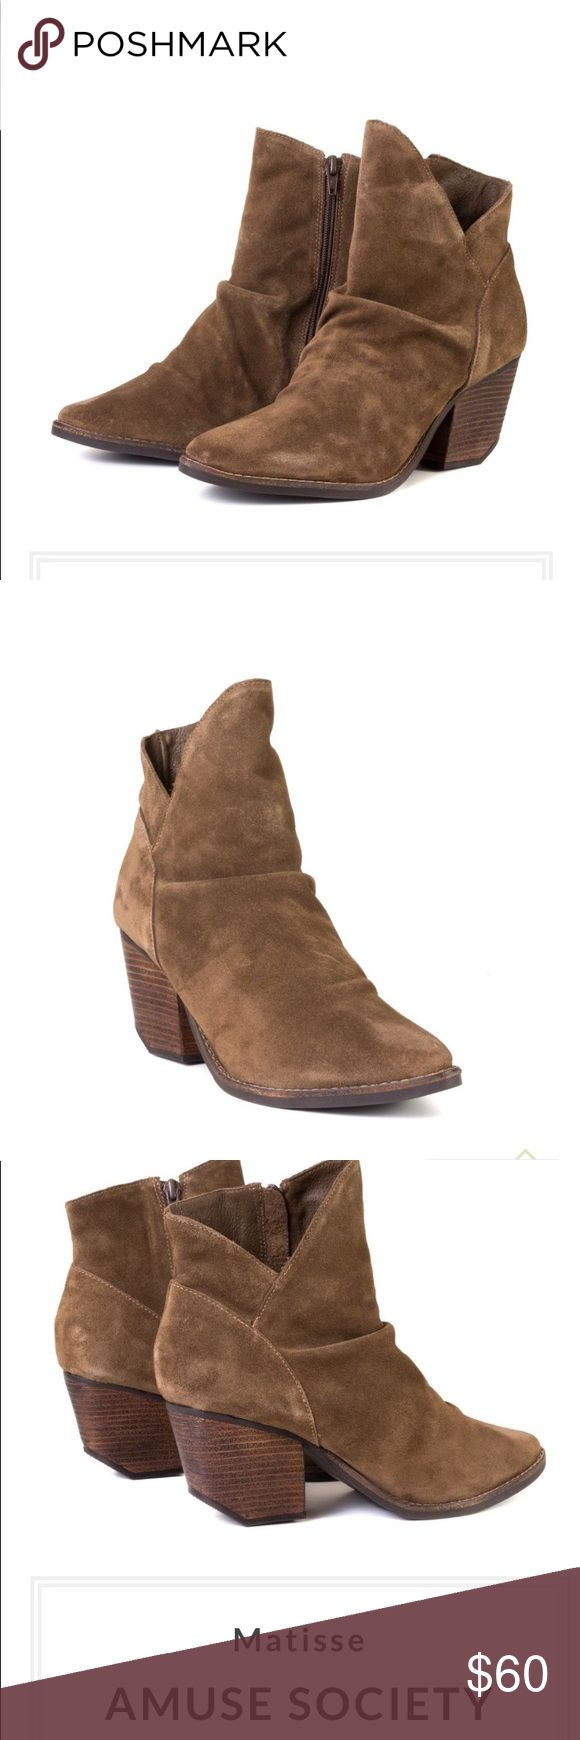 AMUSE SOCIETY Matisse boots tan Matisse Amuse Society Boot is the perfect bootie . The modernistic ankle silhouette creates a flattering line & the pointed toe gives a polished look. The subtle details makes this pair stand out from other boots in your collection.  Made in Brazil Thick and soft suede Suede upper, leather and textile lining Stacked leather heel with a full rubber sole 3 inch heel Inside zipper Classic bootie with a modernistic ankle silhouette and chic heel Matisse Shoes…